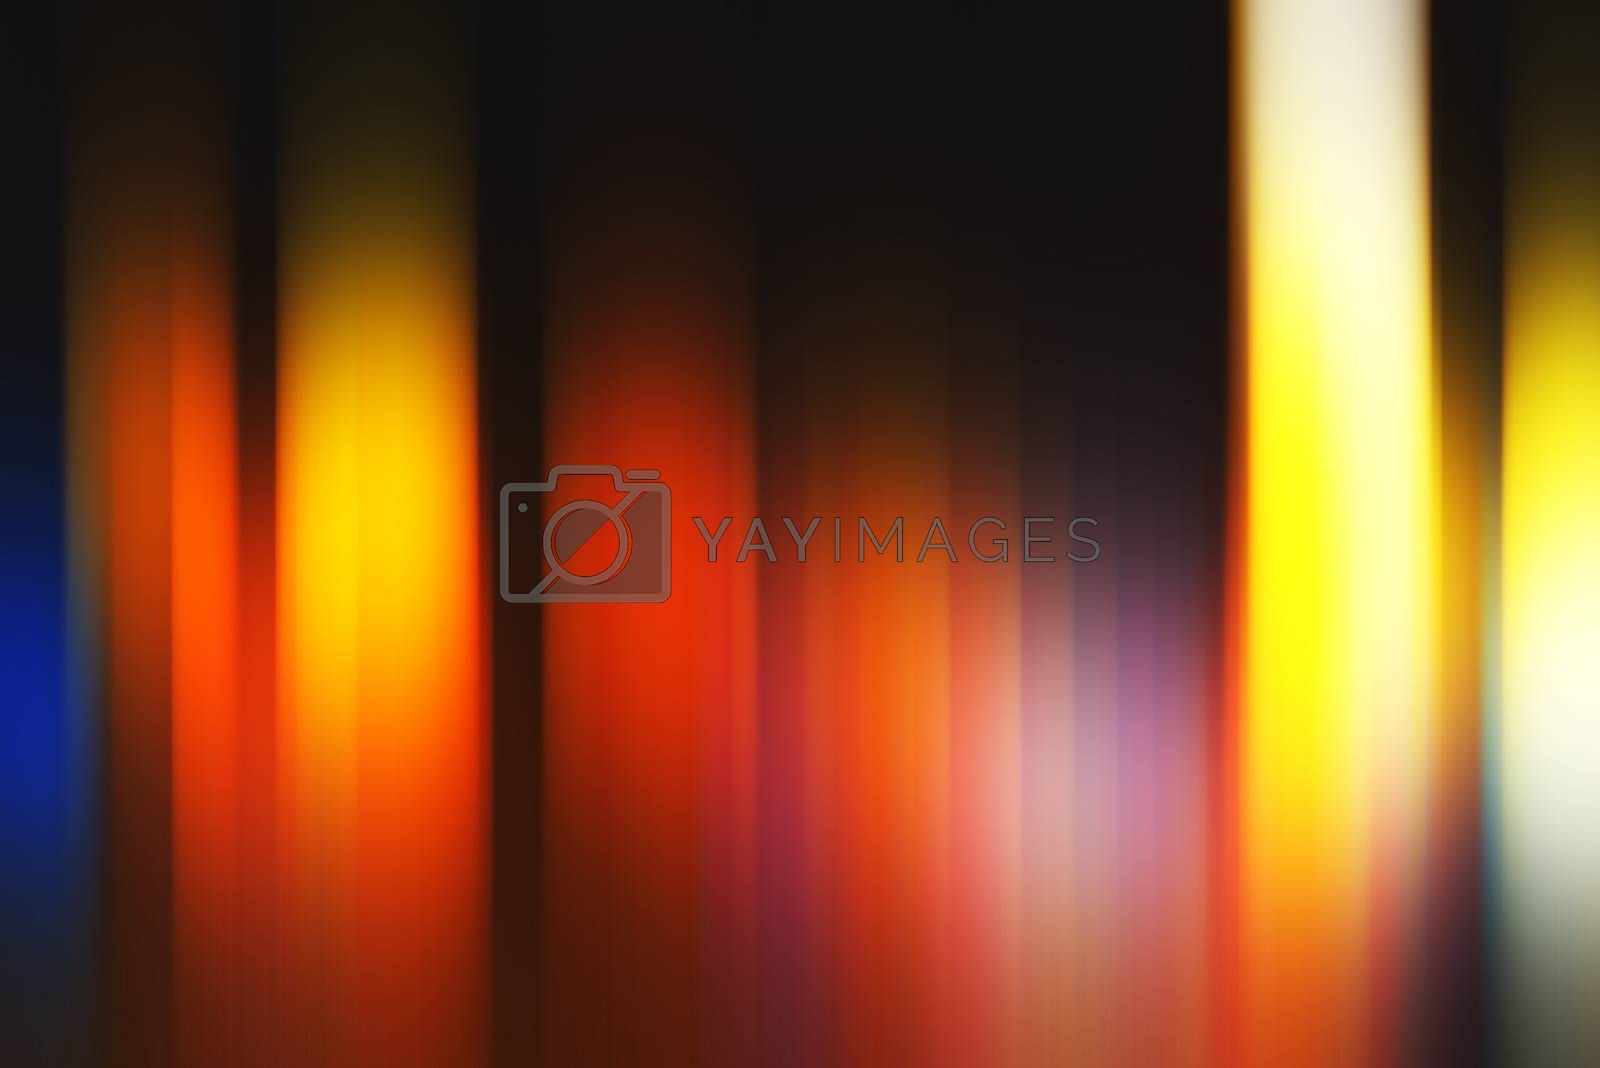 Abstract colorful motion blur background, backdrop for your graphic design